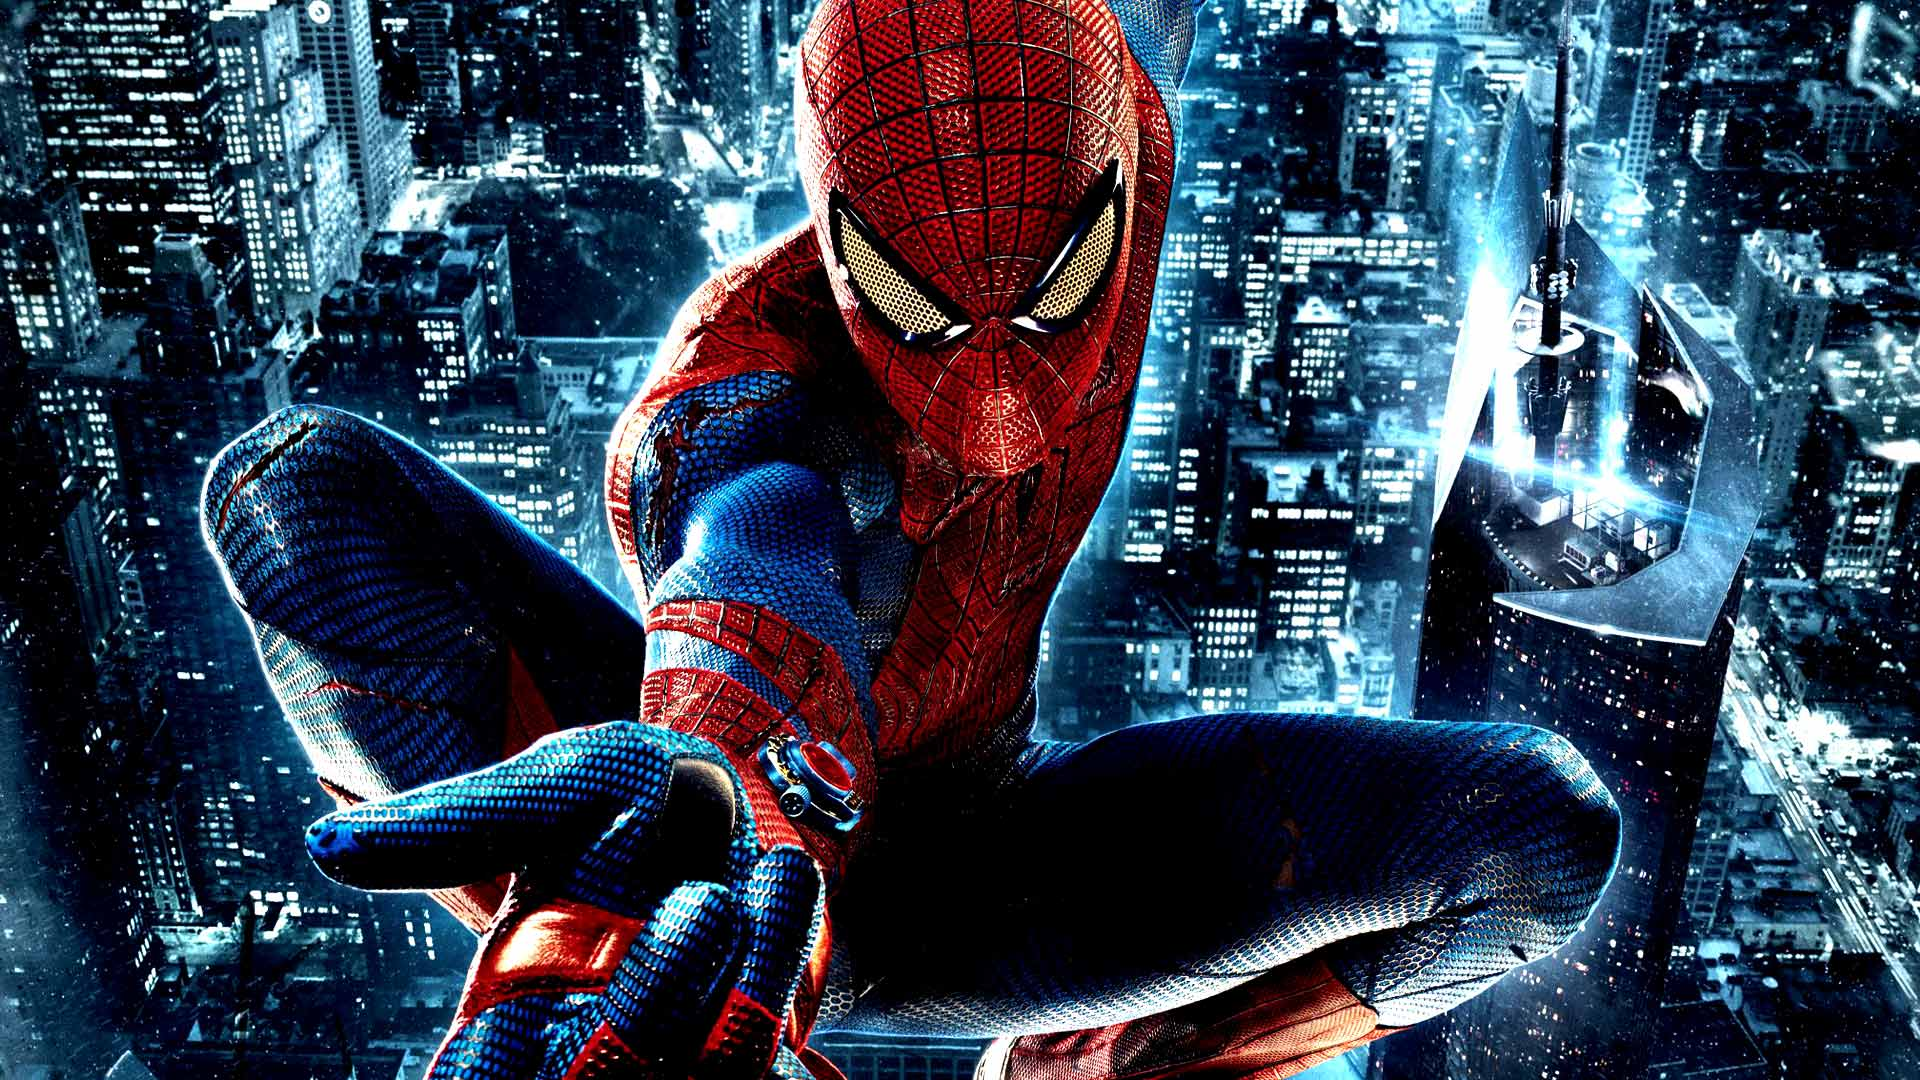 Amazing Spider Man 2 Wallpaper - WallpaperSafari